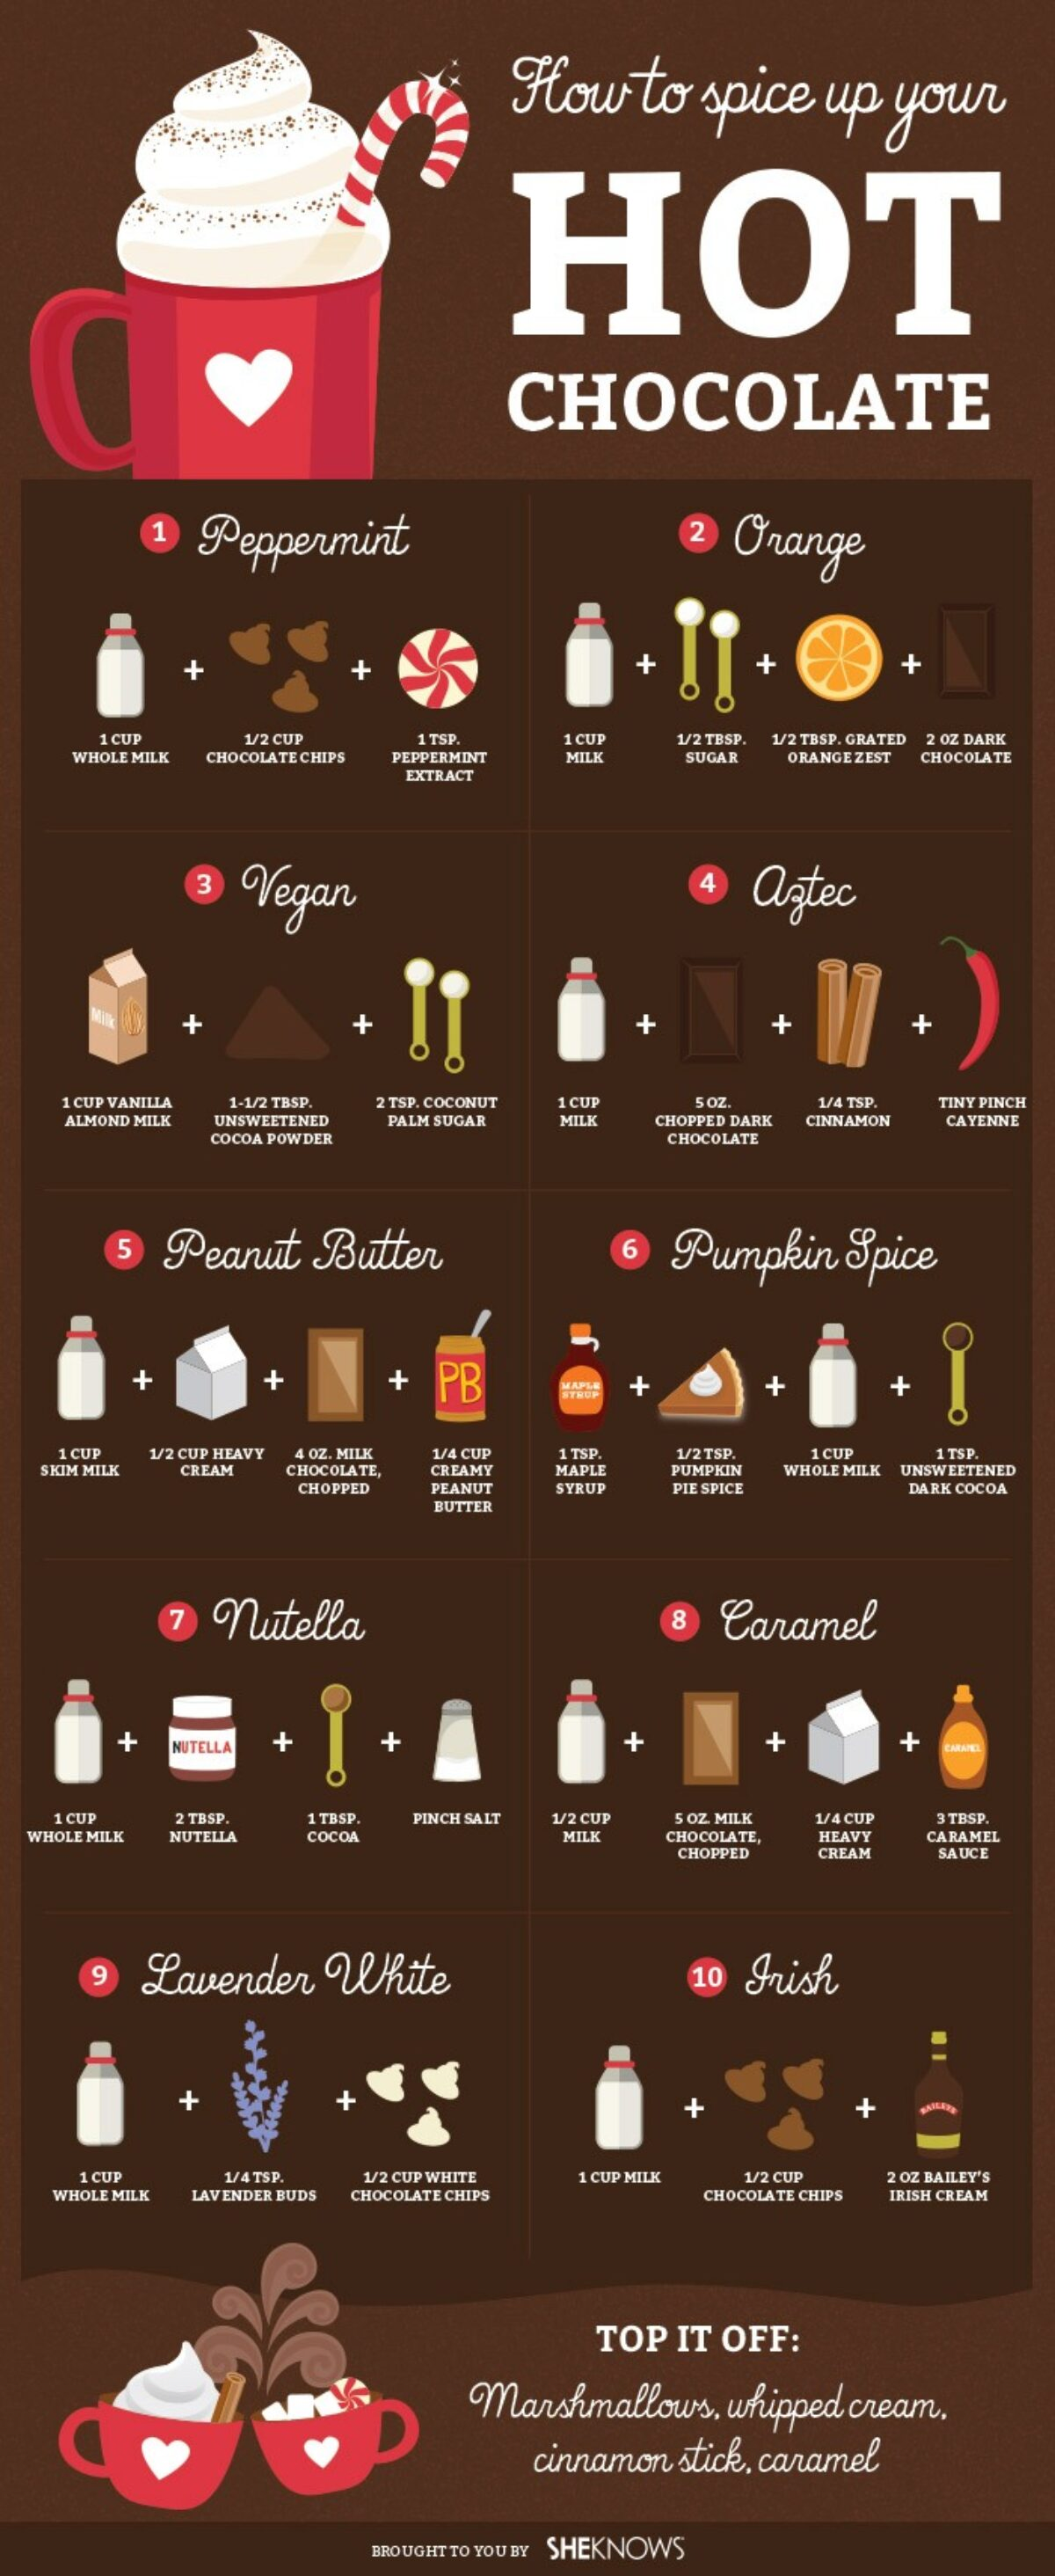 How To Spice Up Your Chocolate